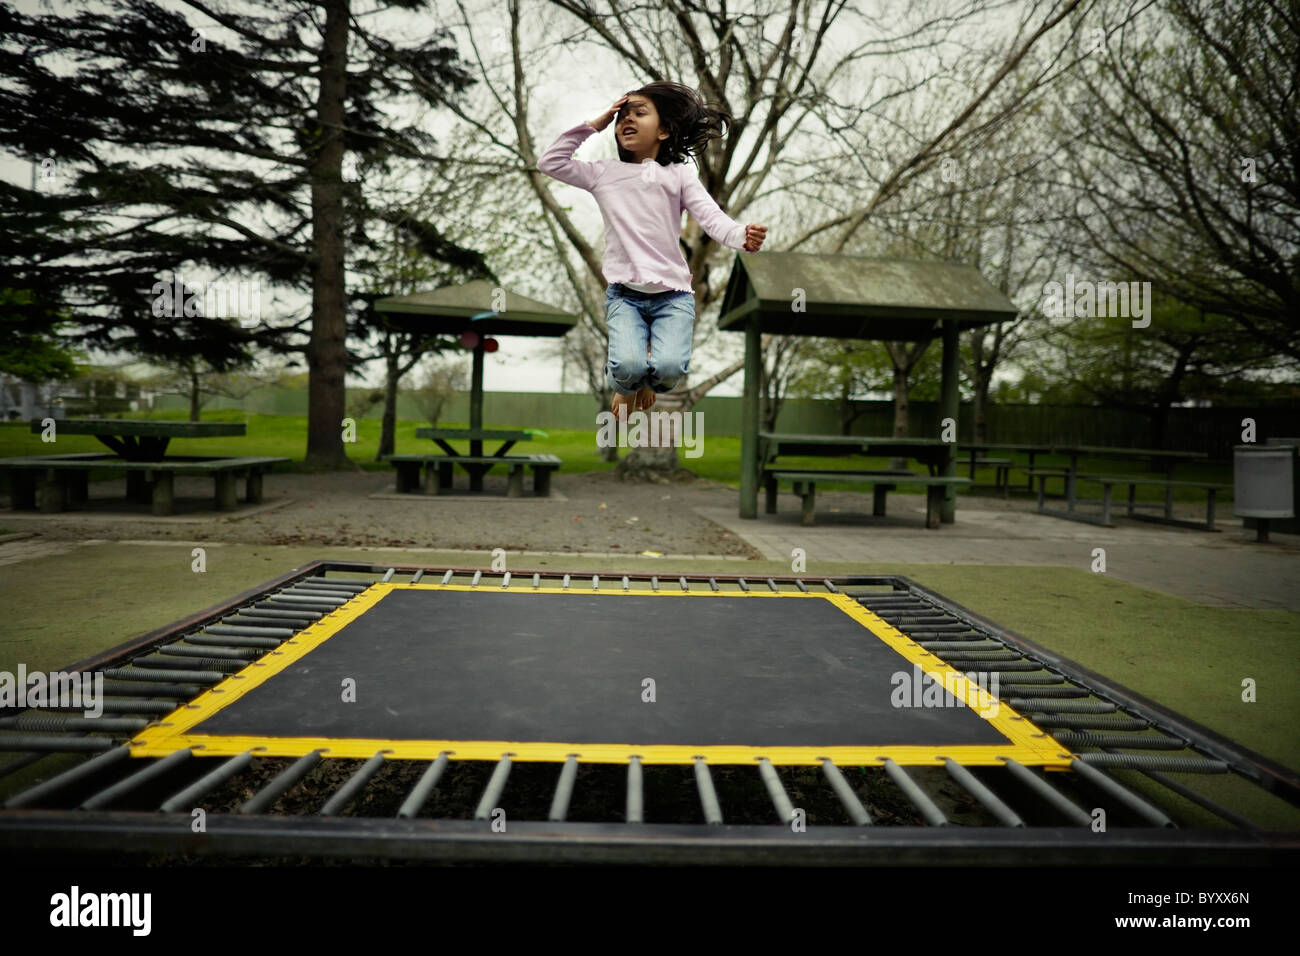 Girl bouncing on trampoline in public park, New Zealand. - Stock Image